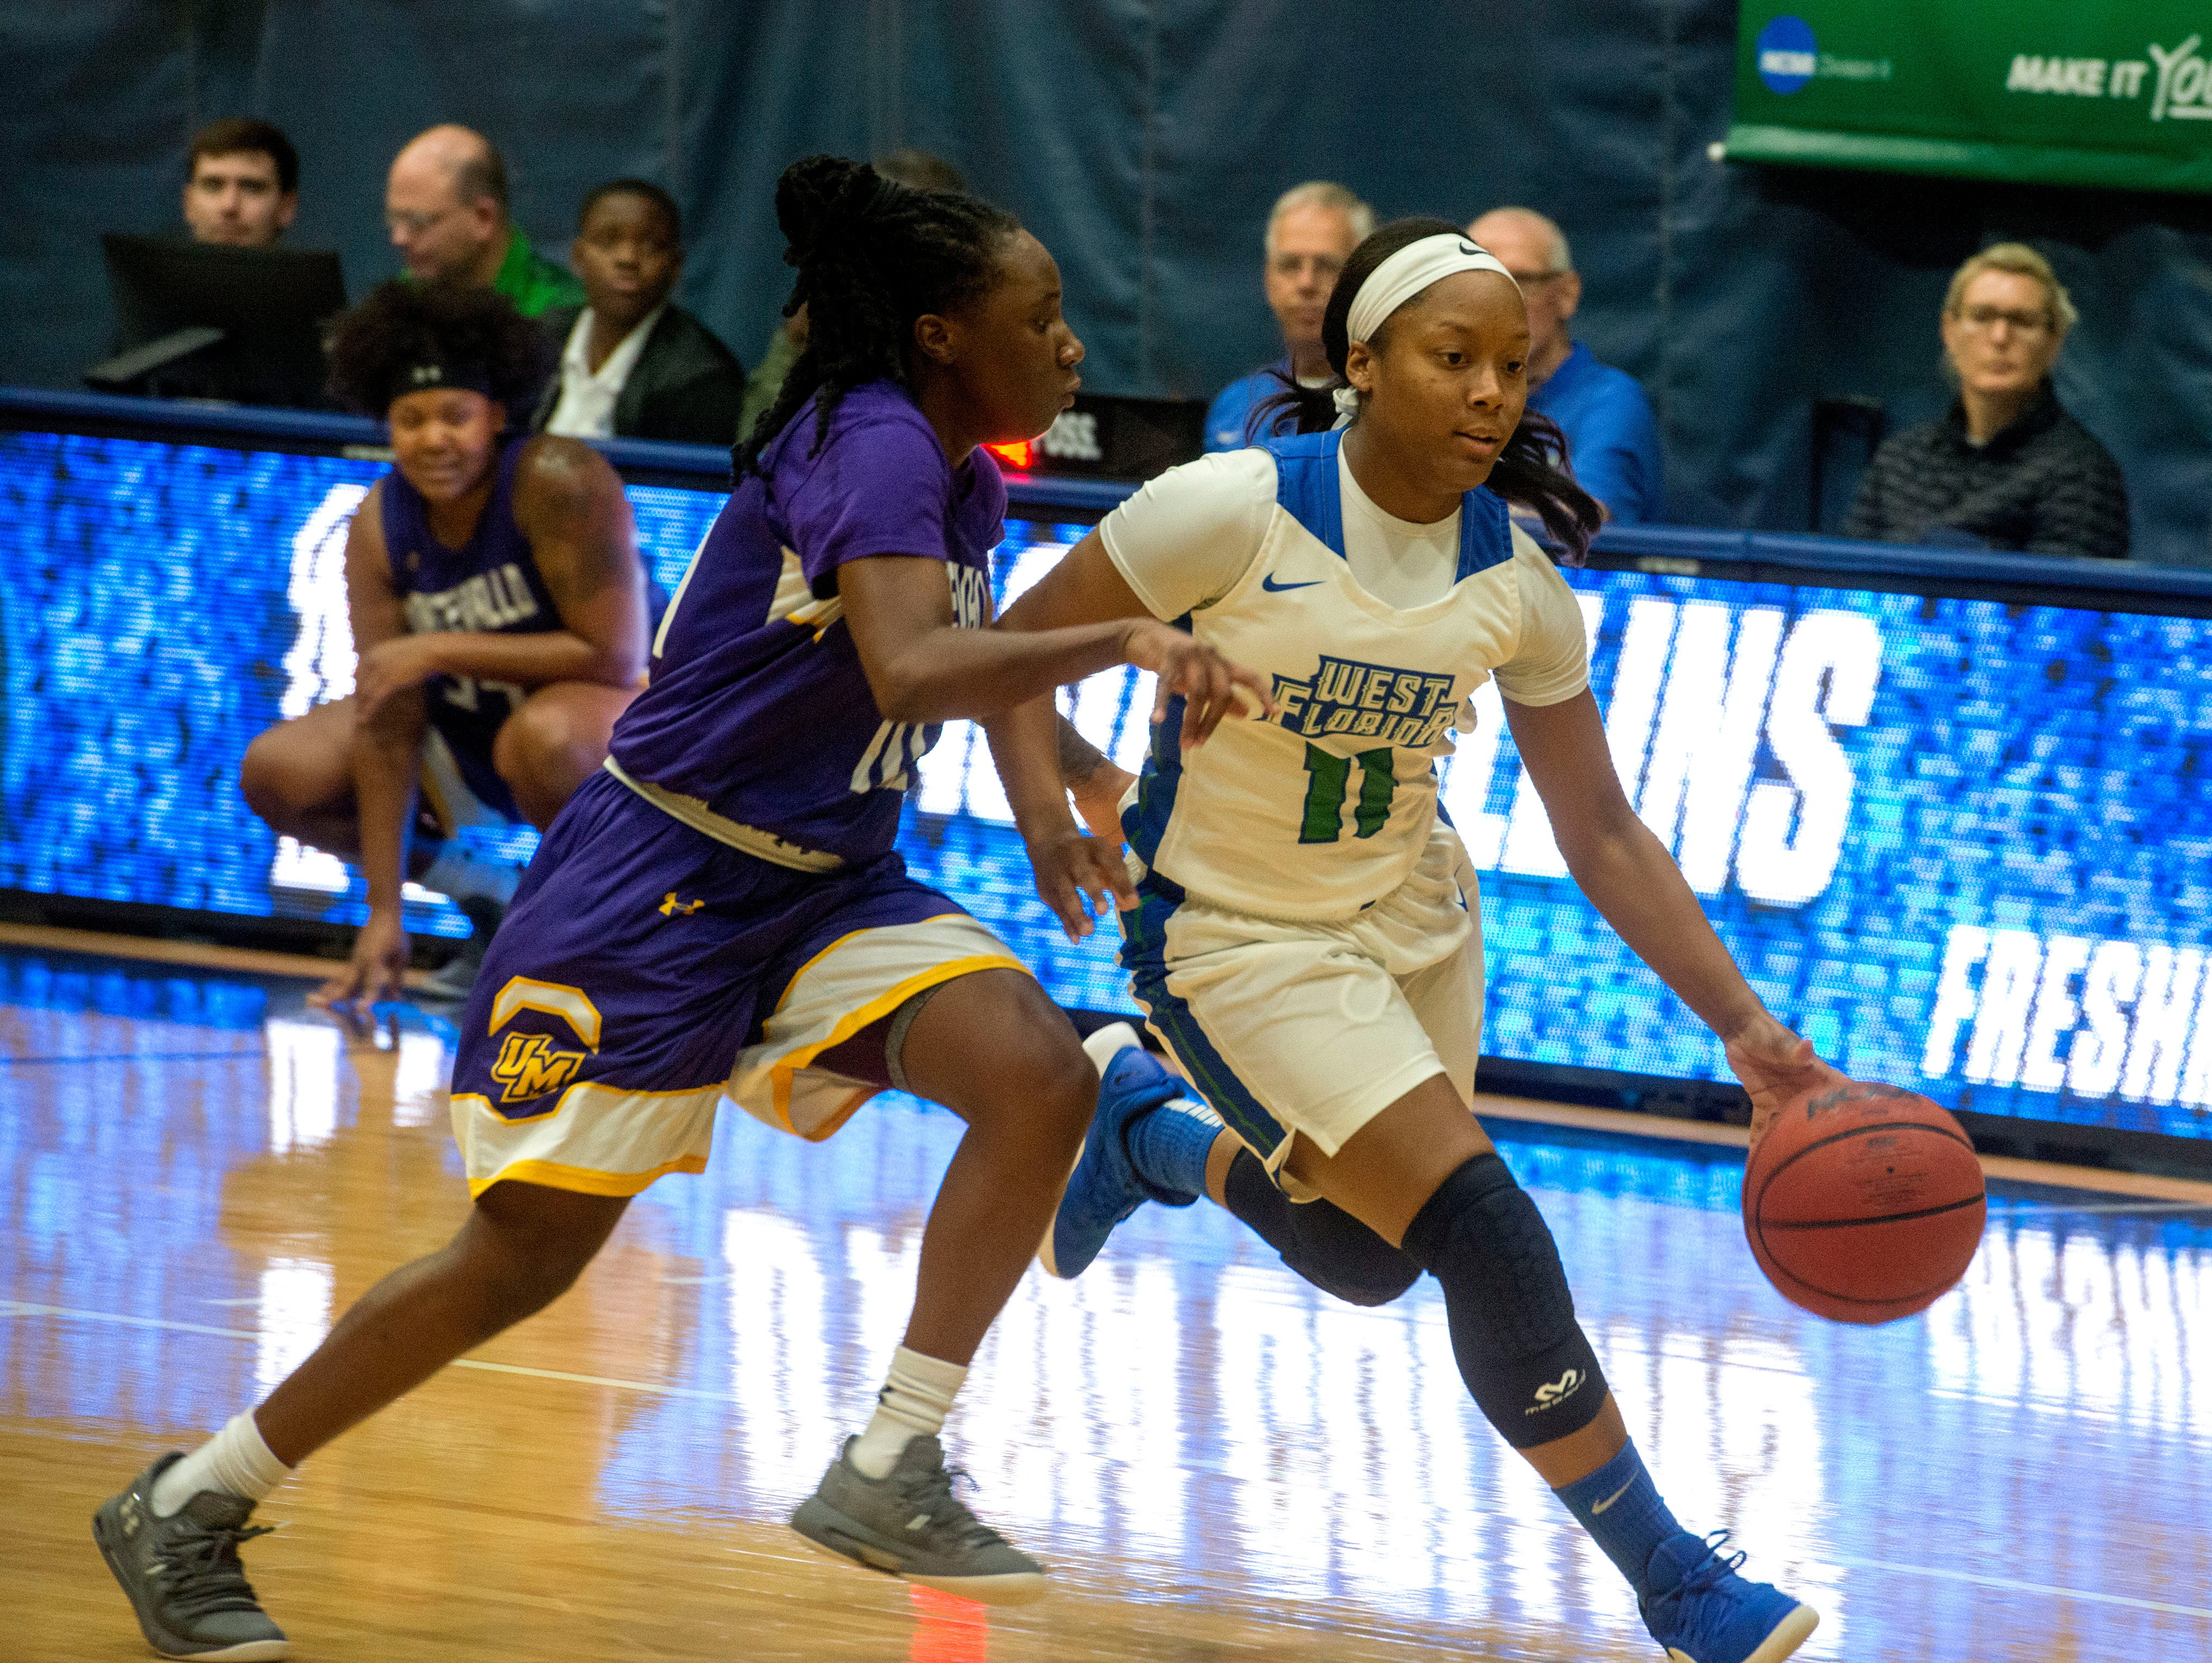 West Florida's D'Asia Collins drives to the basket as they take on the Montevallo Falcons Saturday, January 5, 2019 at the UWF Field House